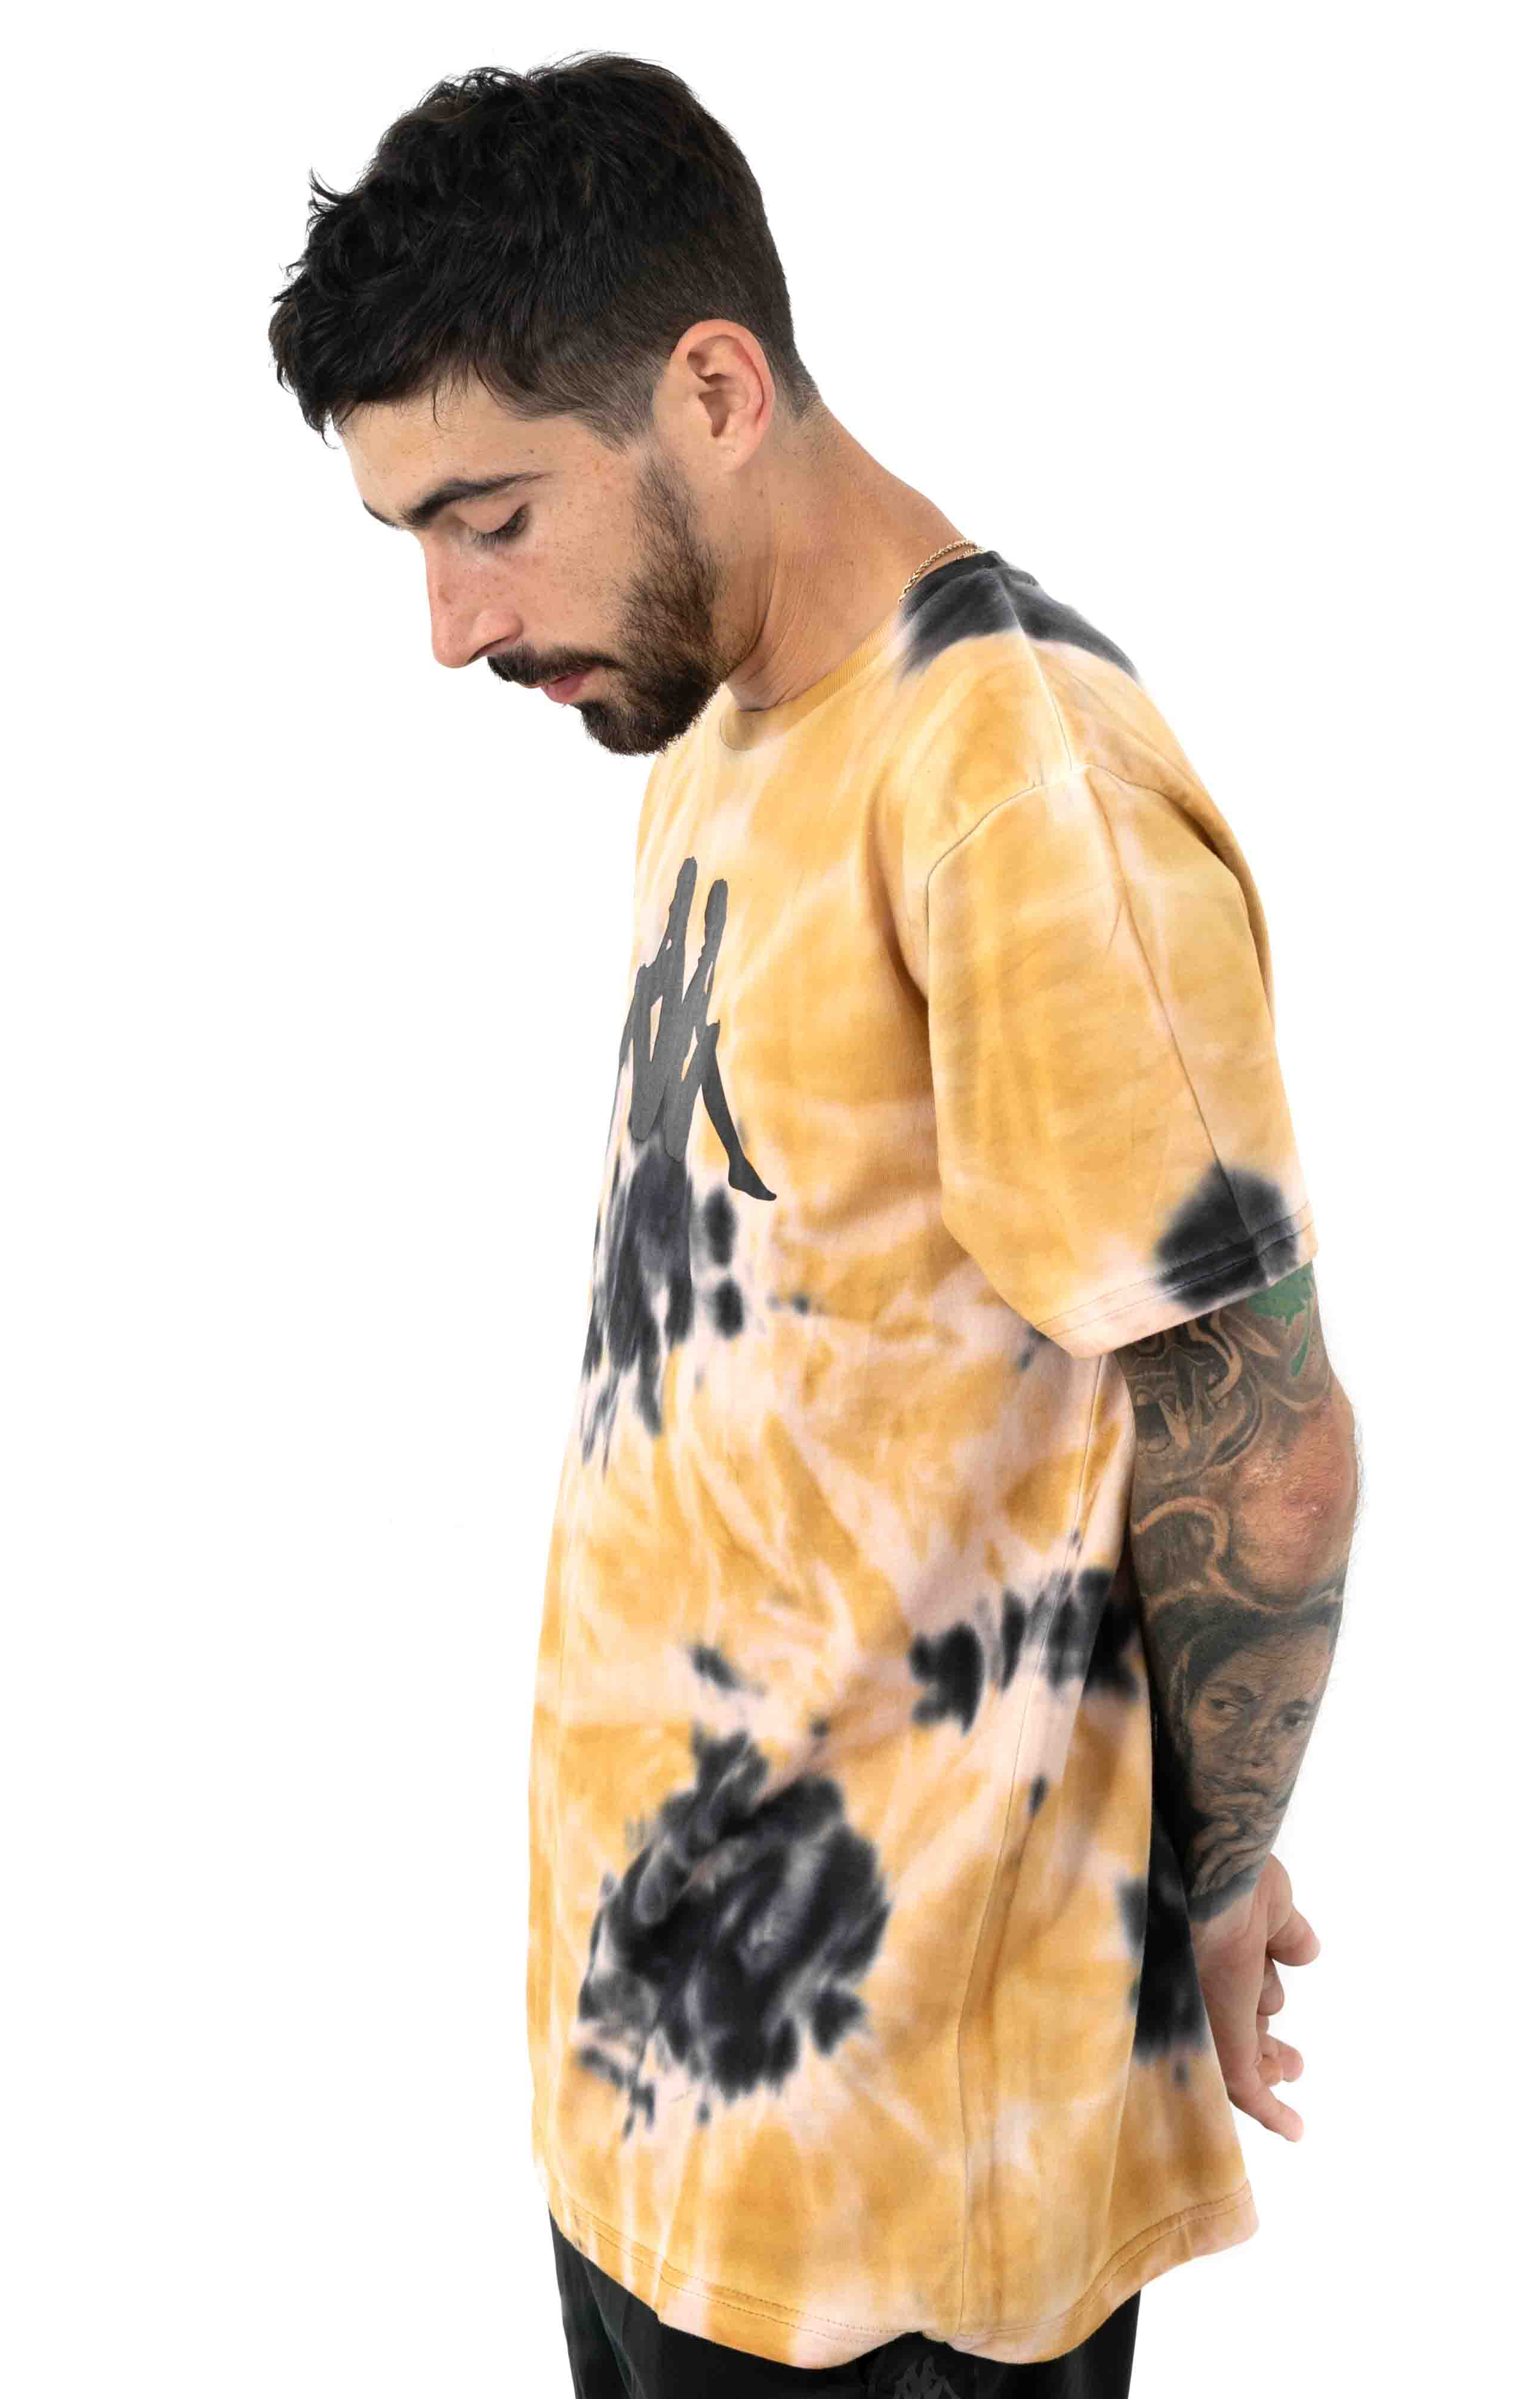 Authentic Gast T-Shirt - Beige/Black/Yellow 2